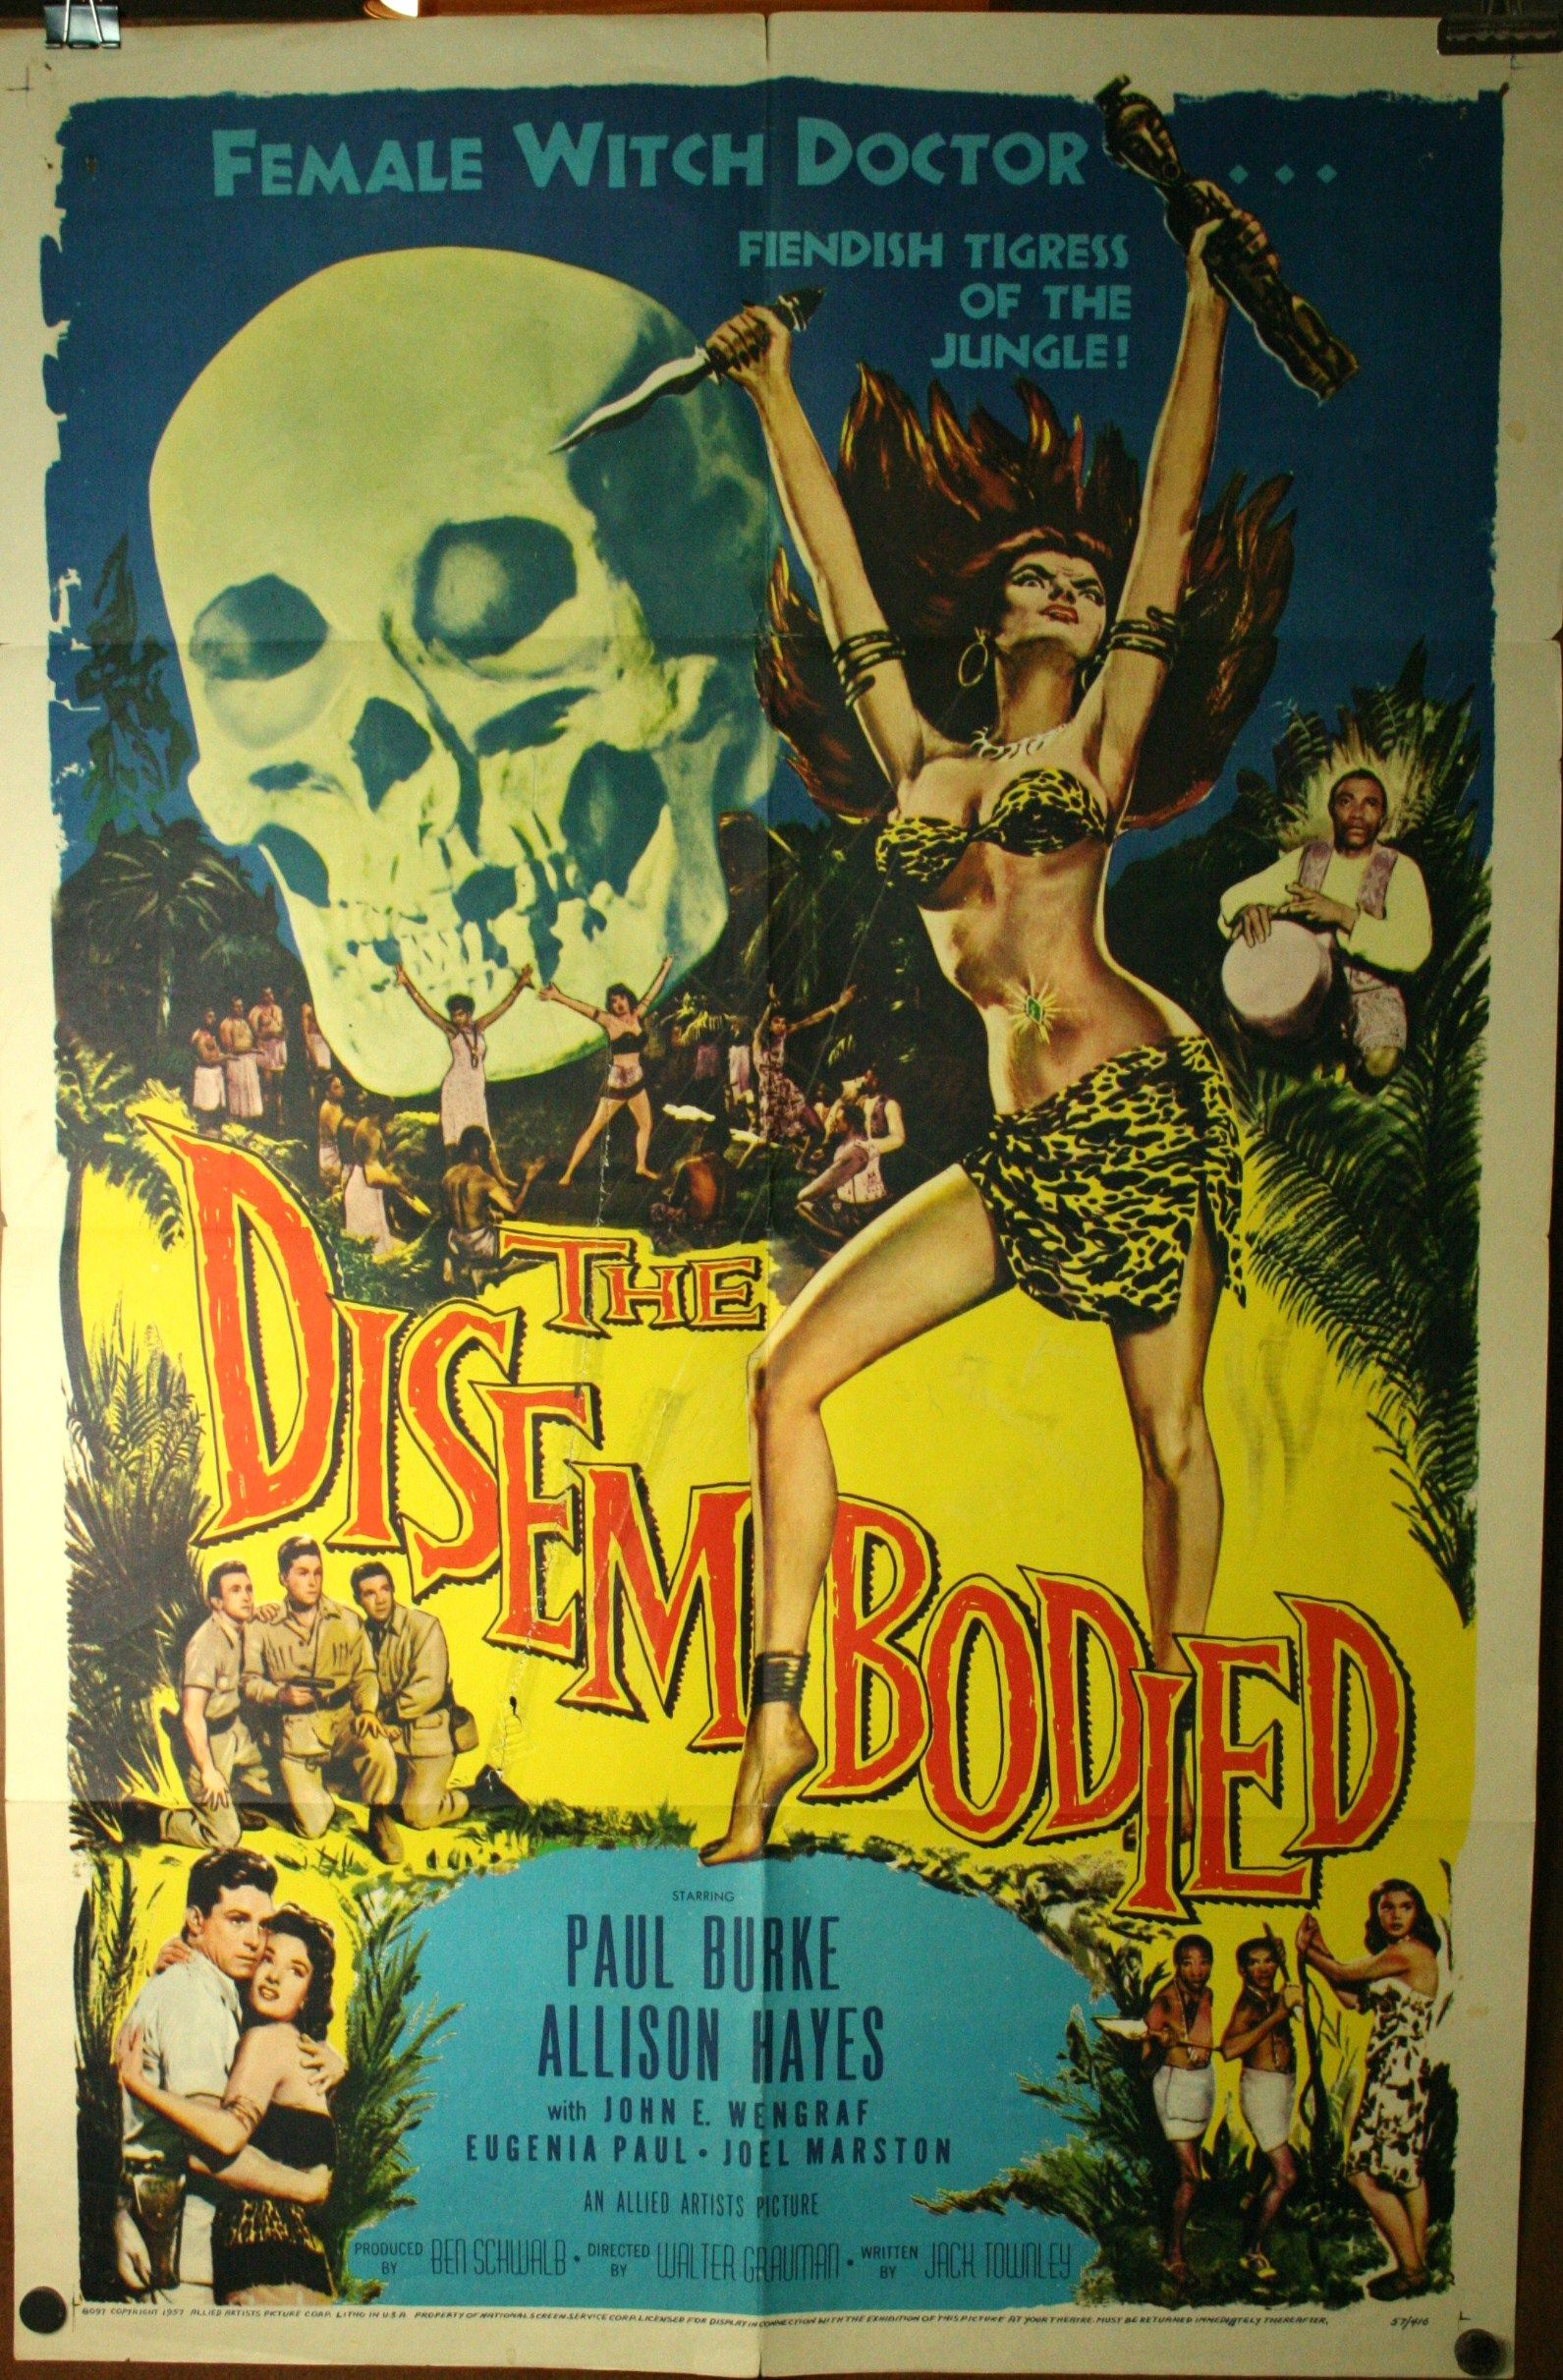 vintage horror movie posters disembodied 1950�s horror